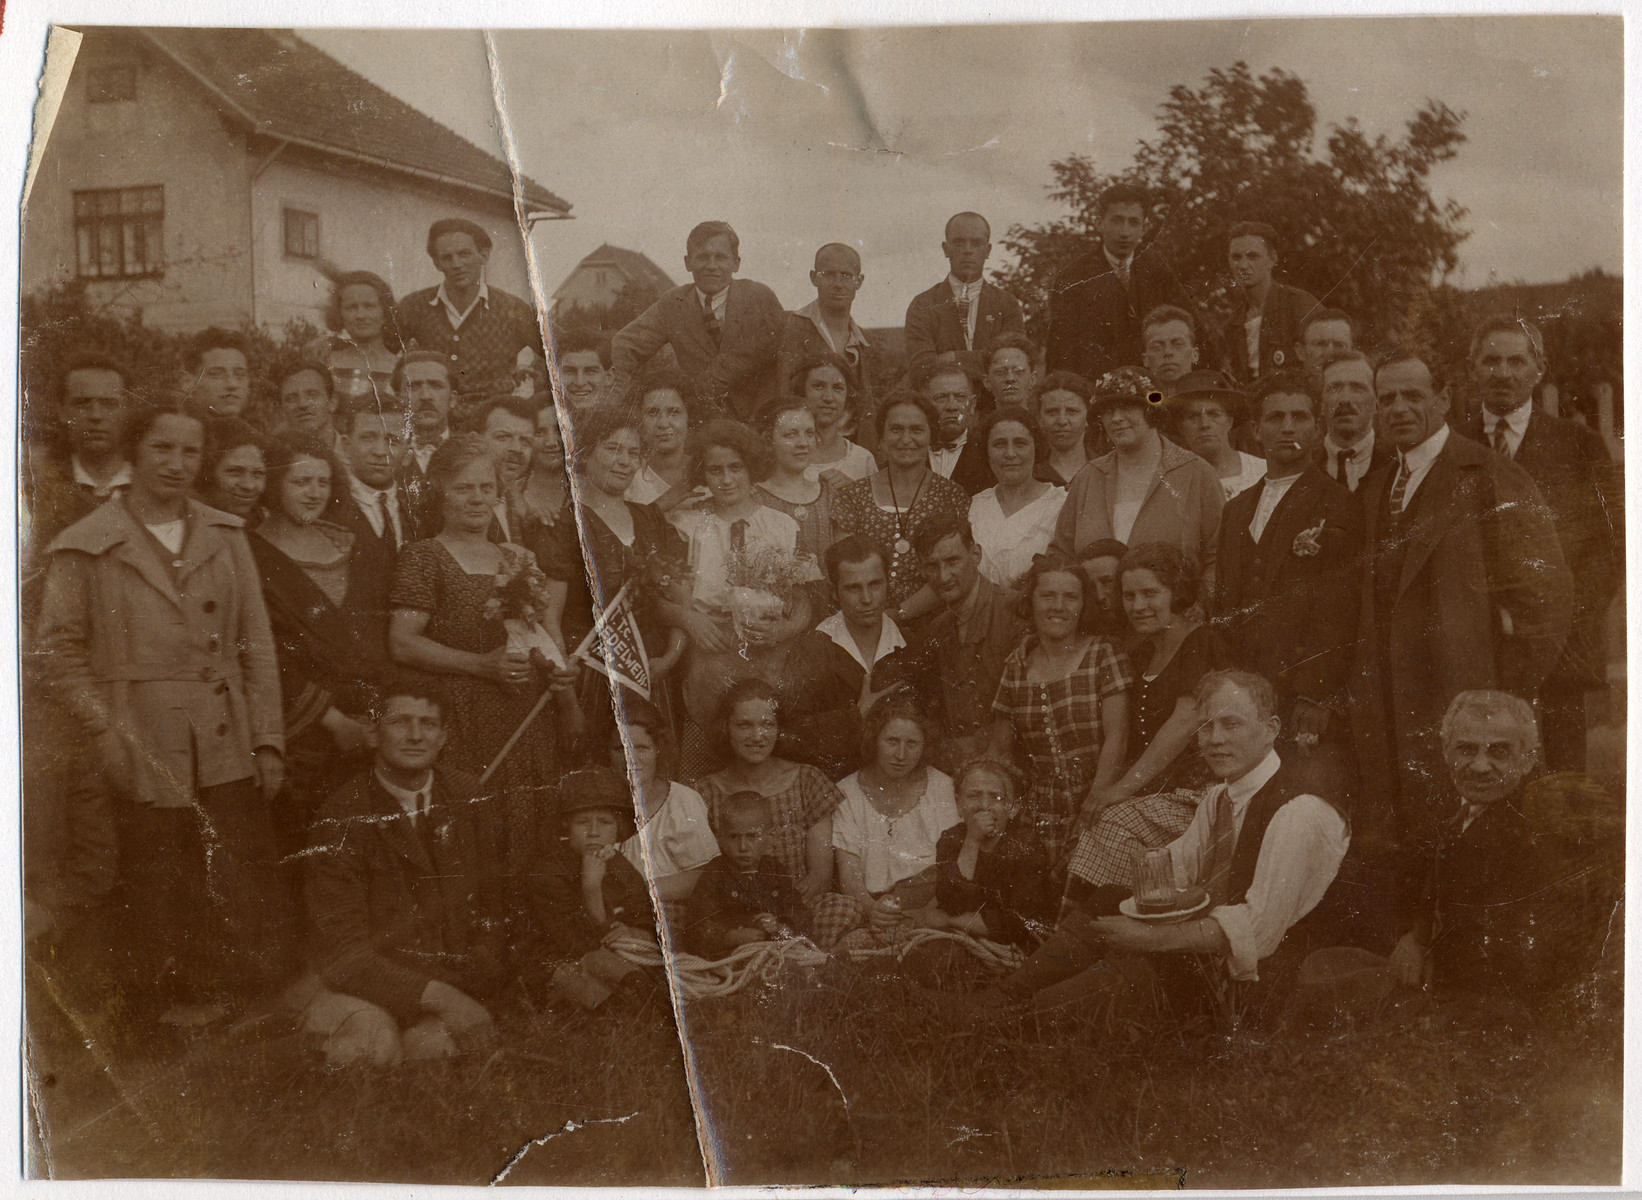 Group portrait of a hiking group on an outing.    Among those pictured is Hilda Wiener (far left, front).